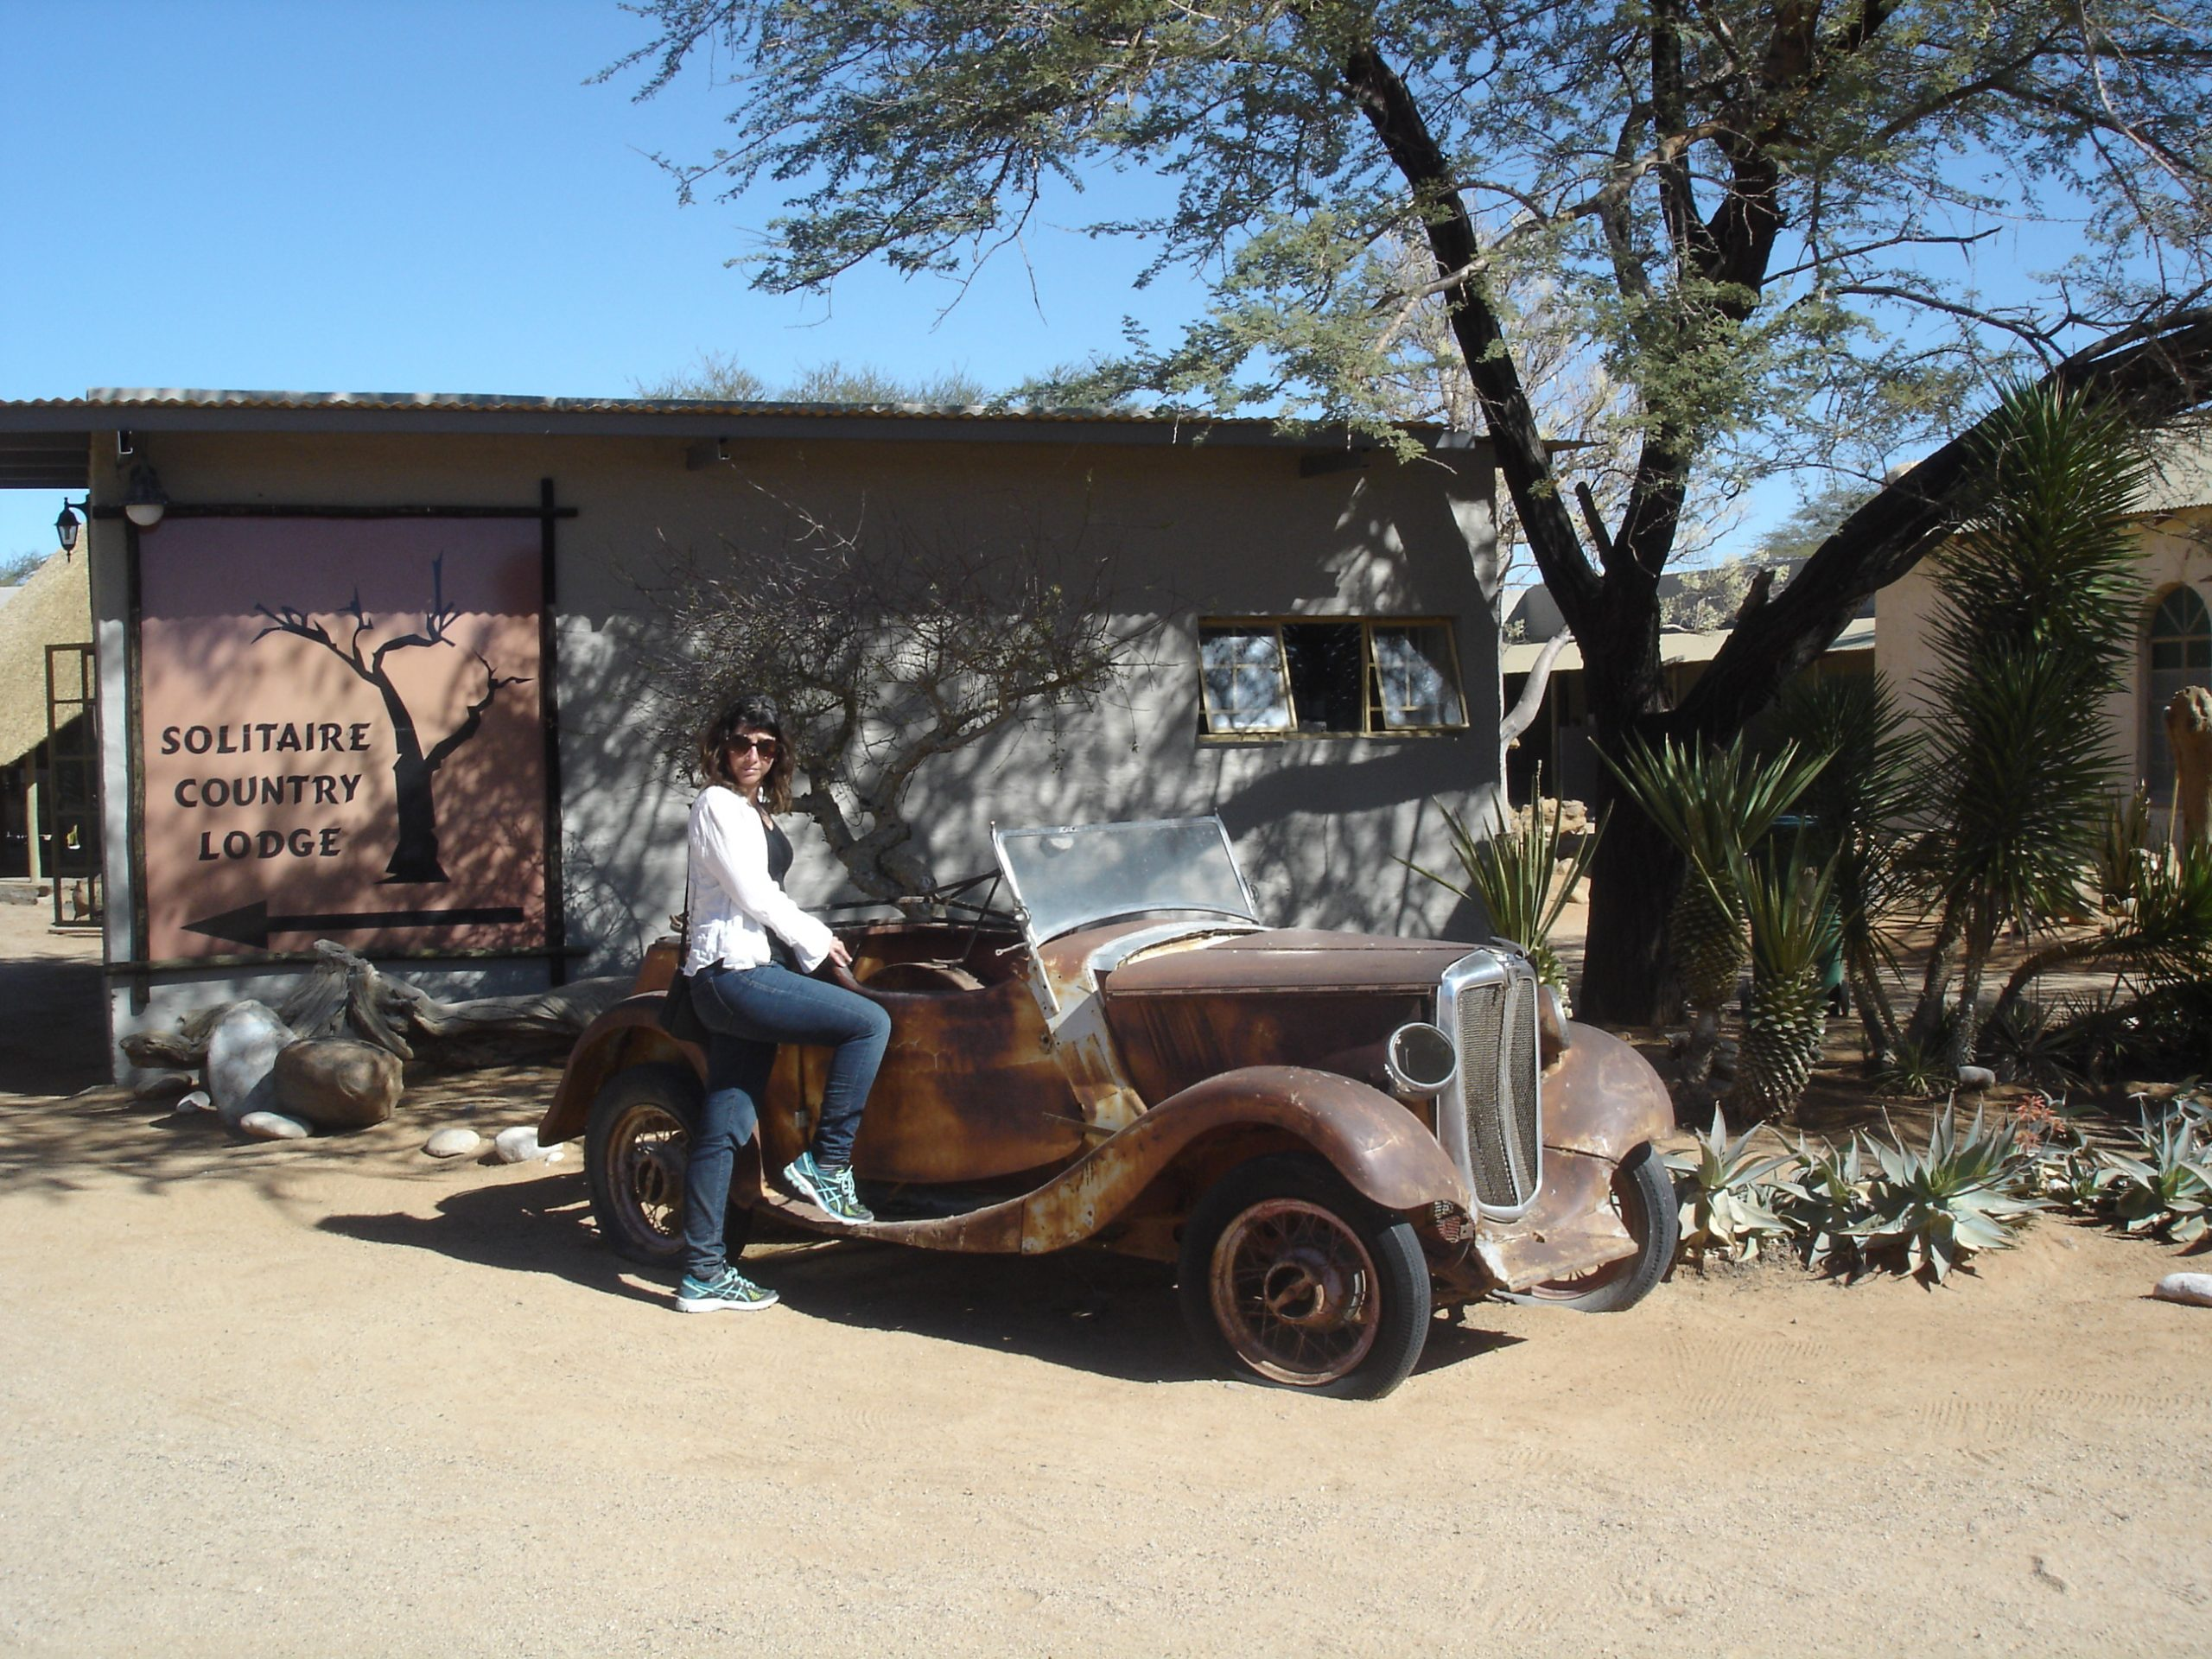 Natalie posing with a old ford our side the Solitaire Country Club Namibia